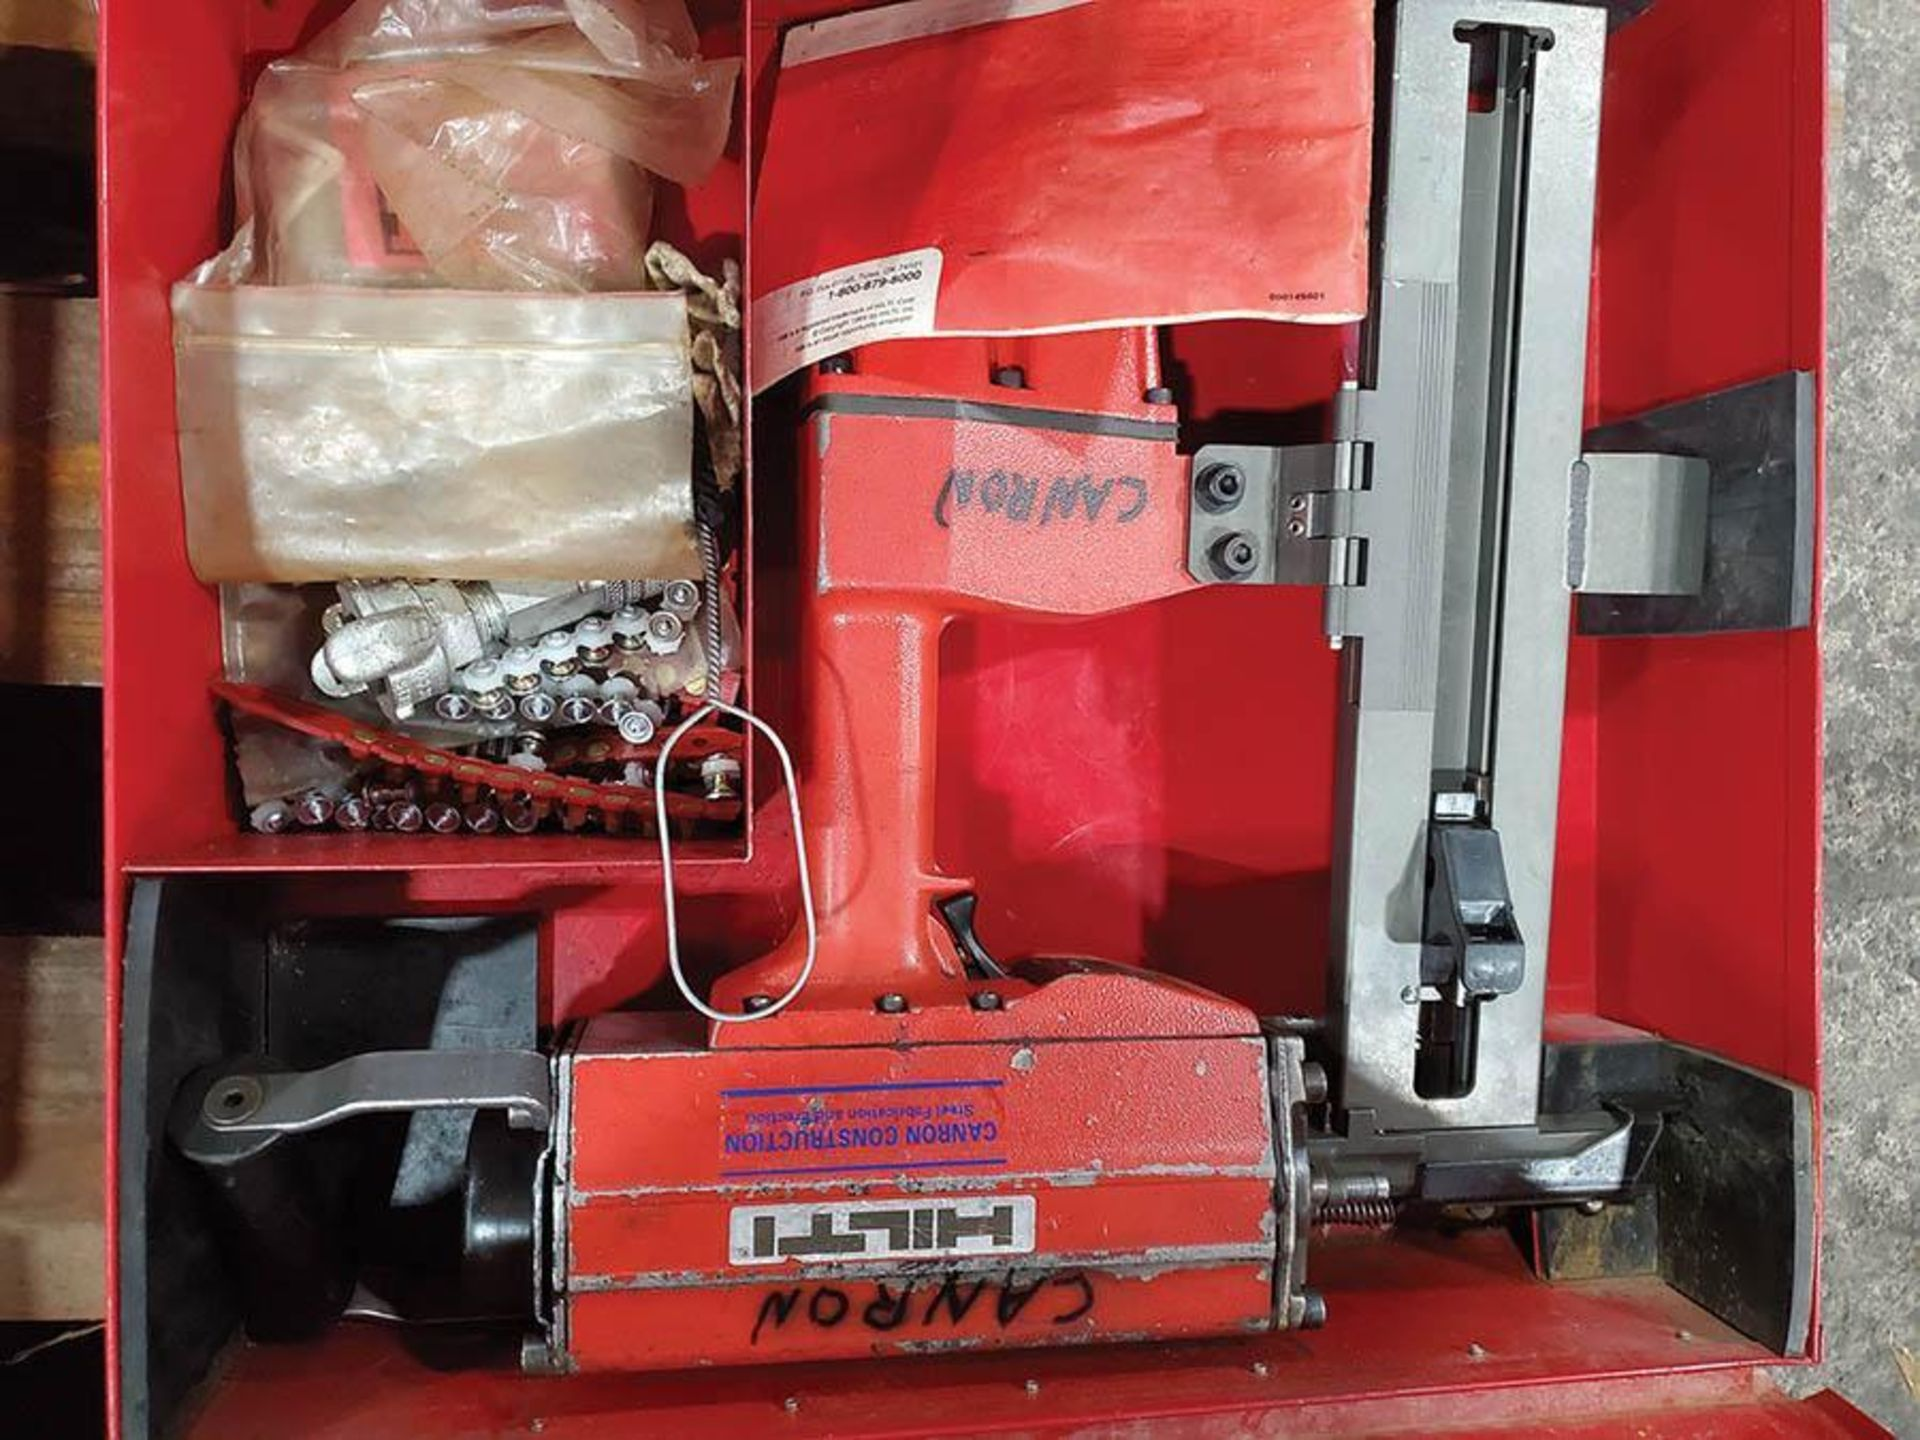 LOT ON PALLET, (2) HILTI R4X12 PNEUMATIC CONCRETE STEEL NAILERS - Image 5 of 6